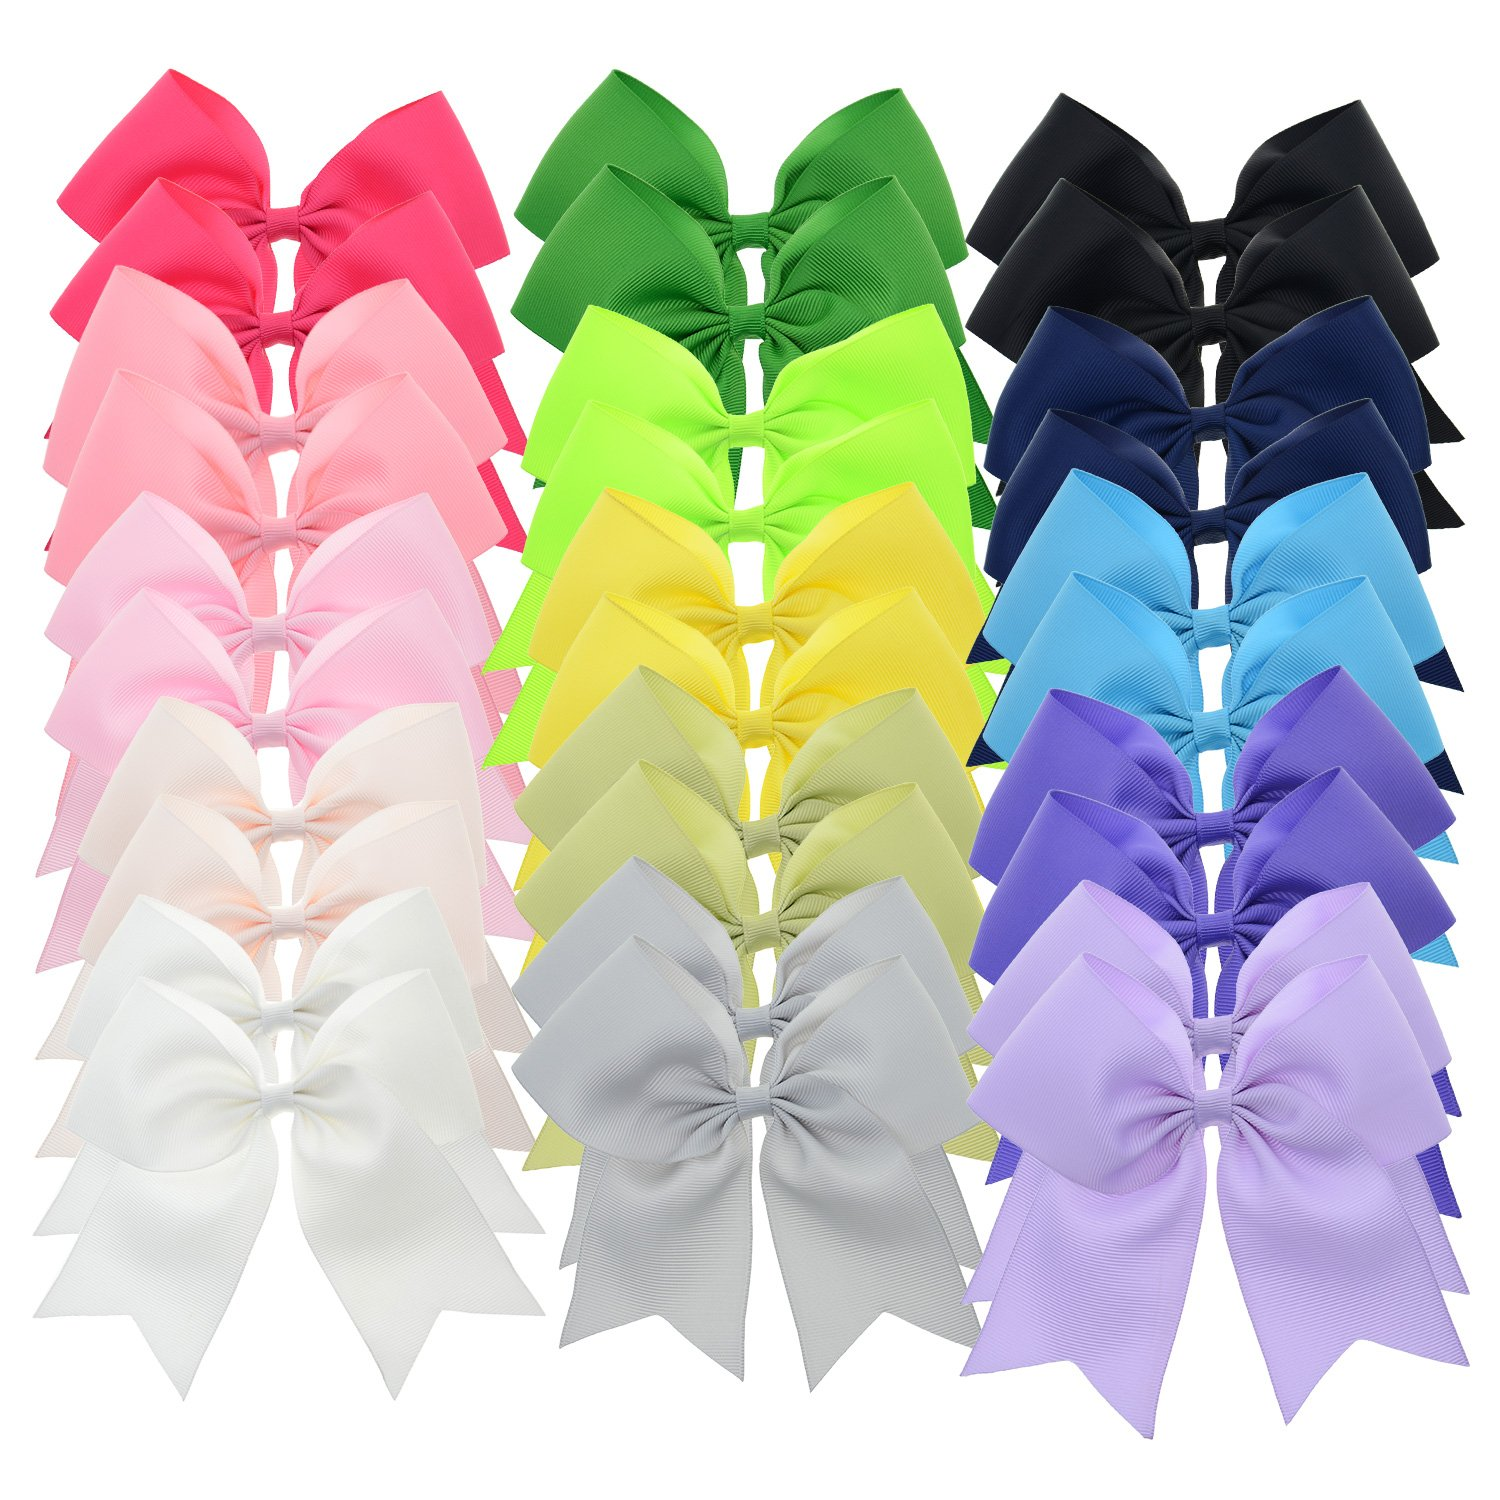 Women Sports Cheer Hair Bows Clips for School College Cheerleading Girls Teens HW1401